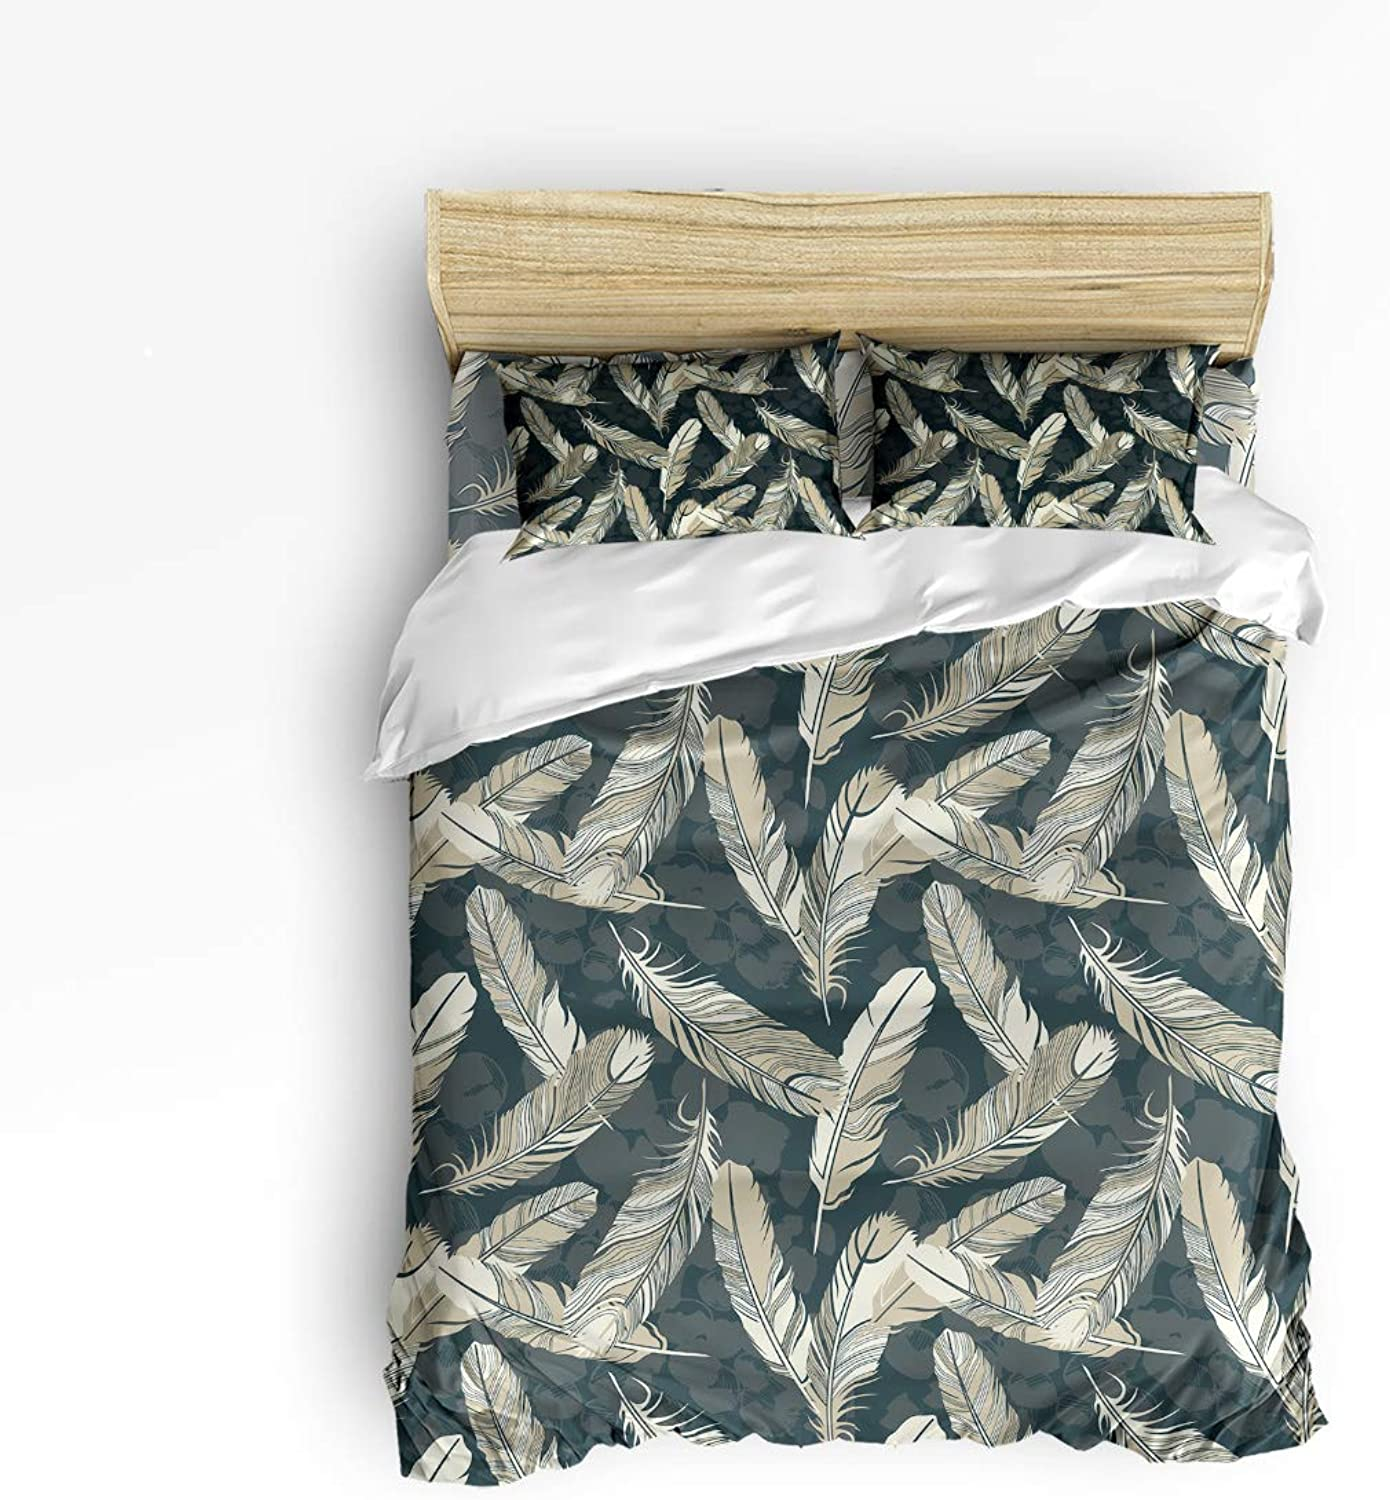 Fandim Fly Bedding Set Full Size Fallen Feathers,Comforter Cover Sets for All Season